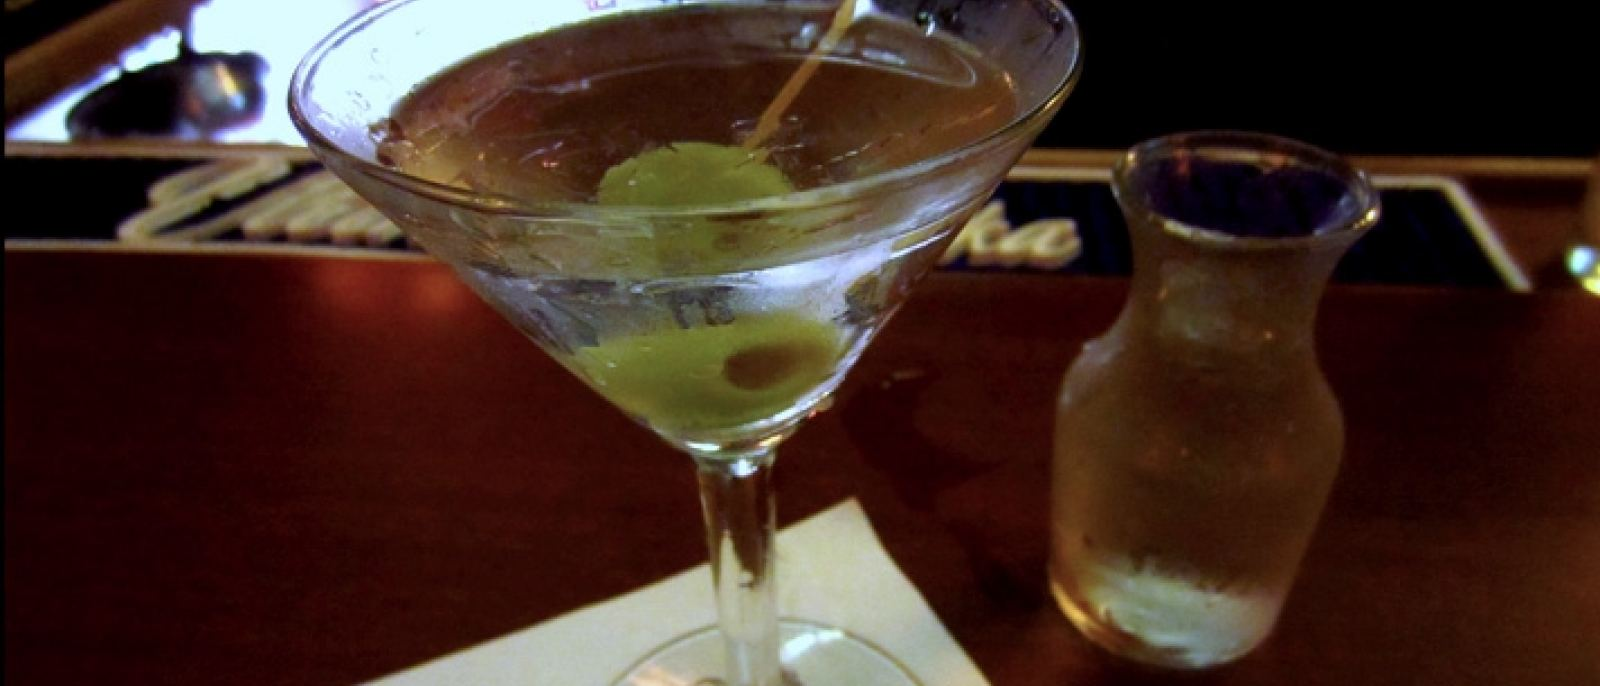 Martini at Musso & Frank Grill